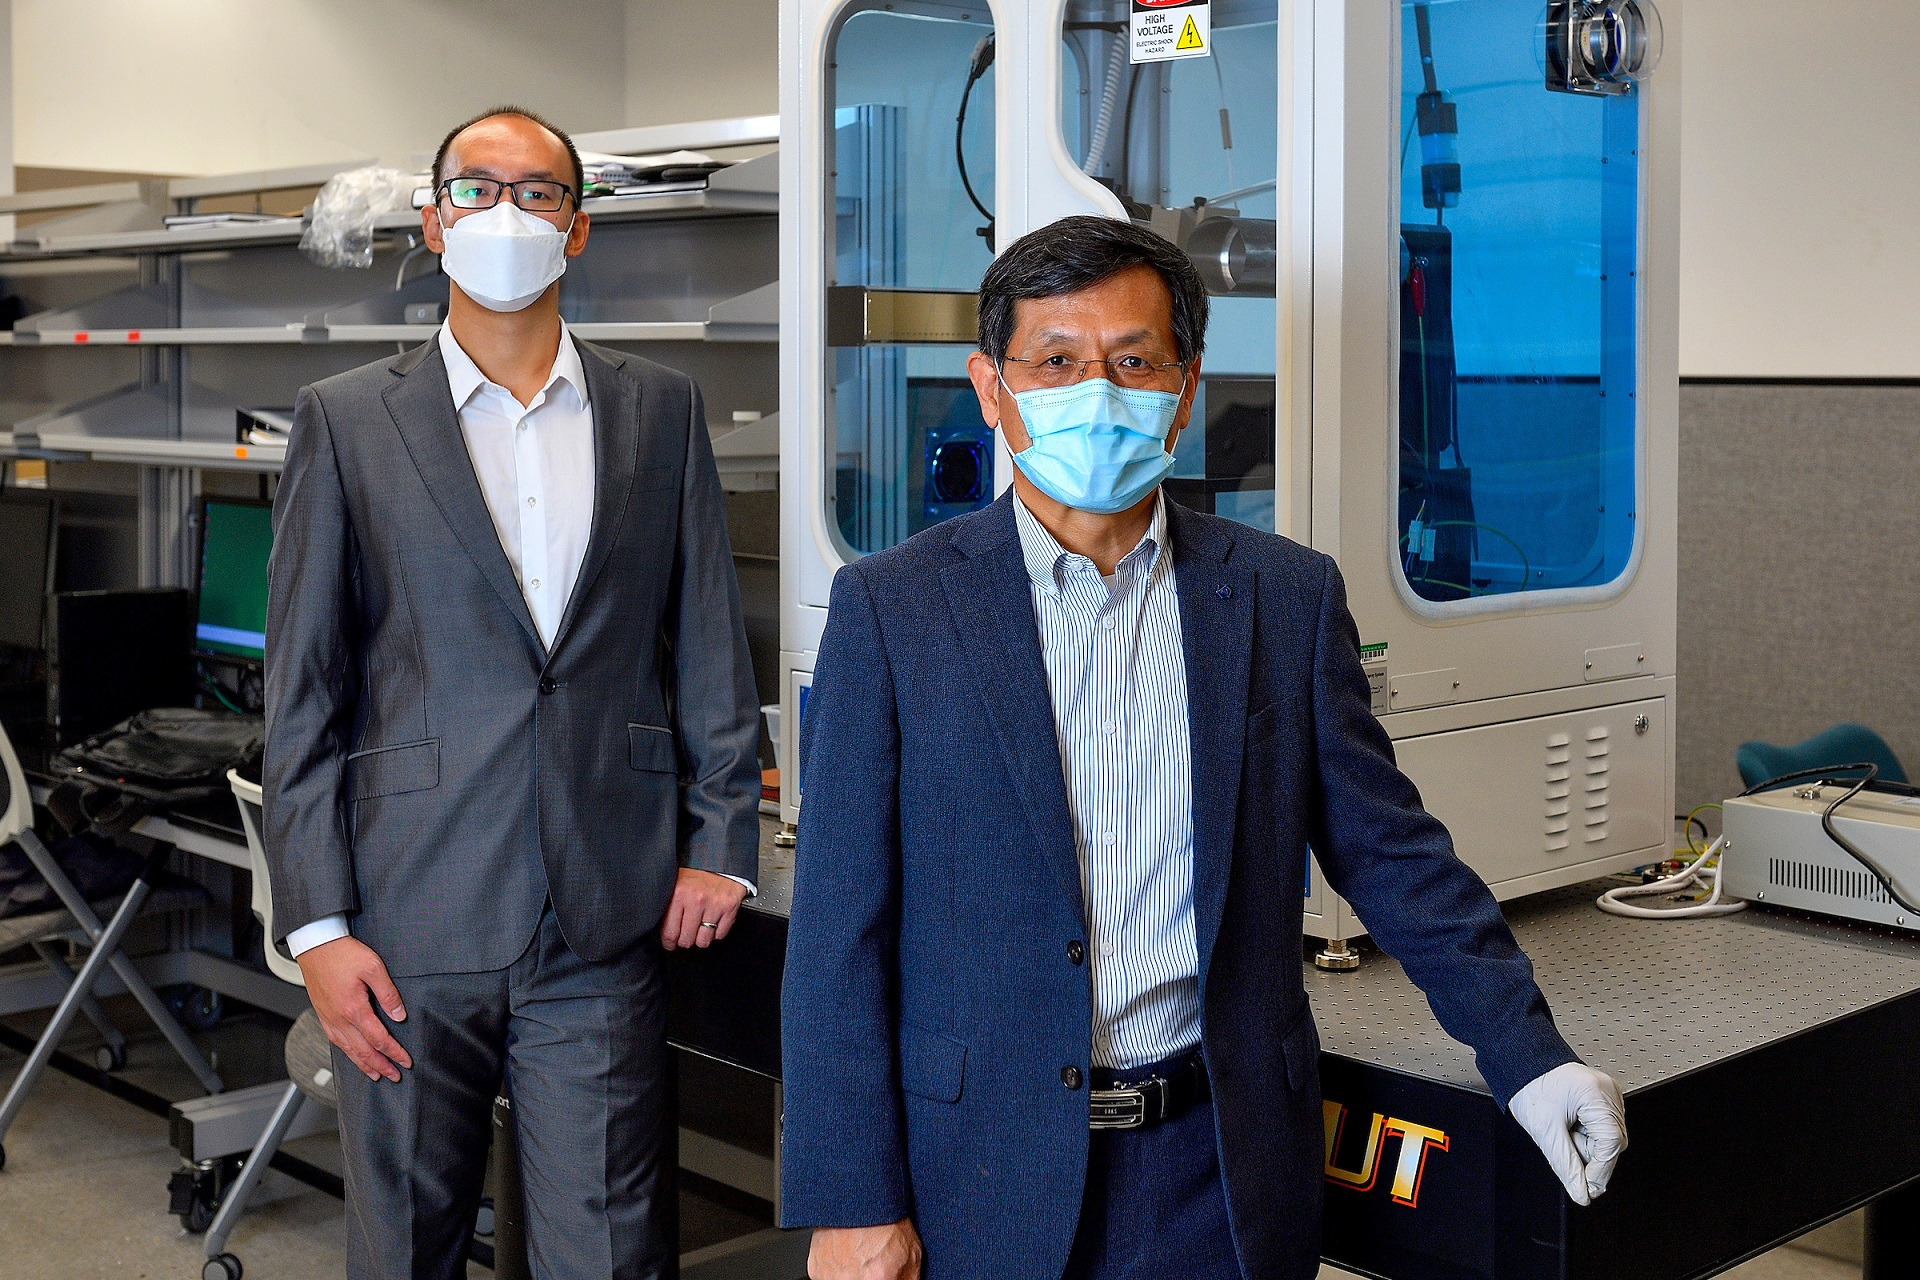 Principal investigators Wonbong Choi and Yijie Jiang will research the fabrication of a lightweight,